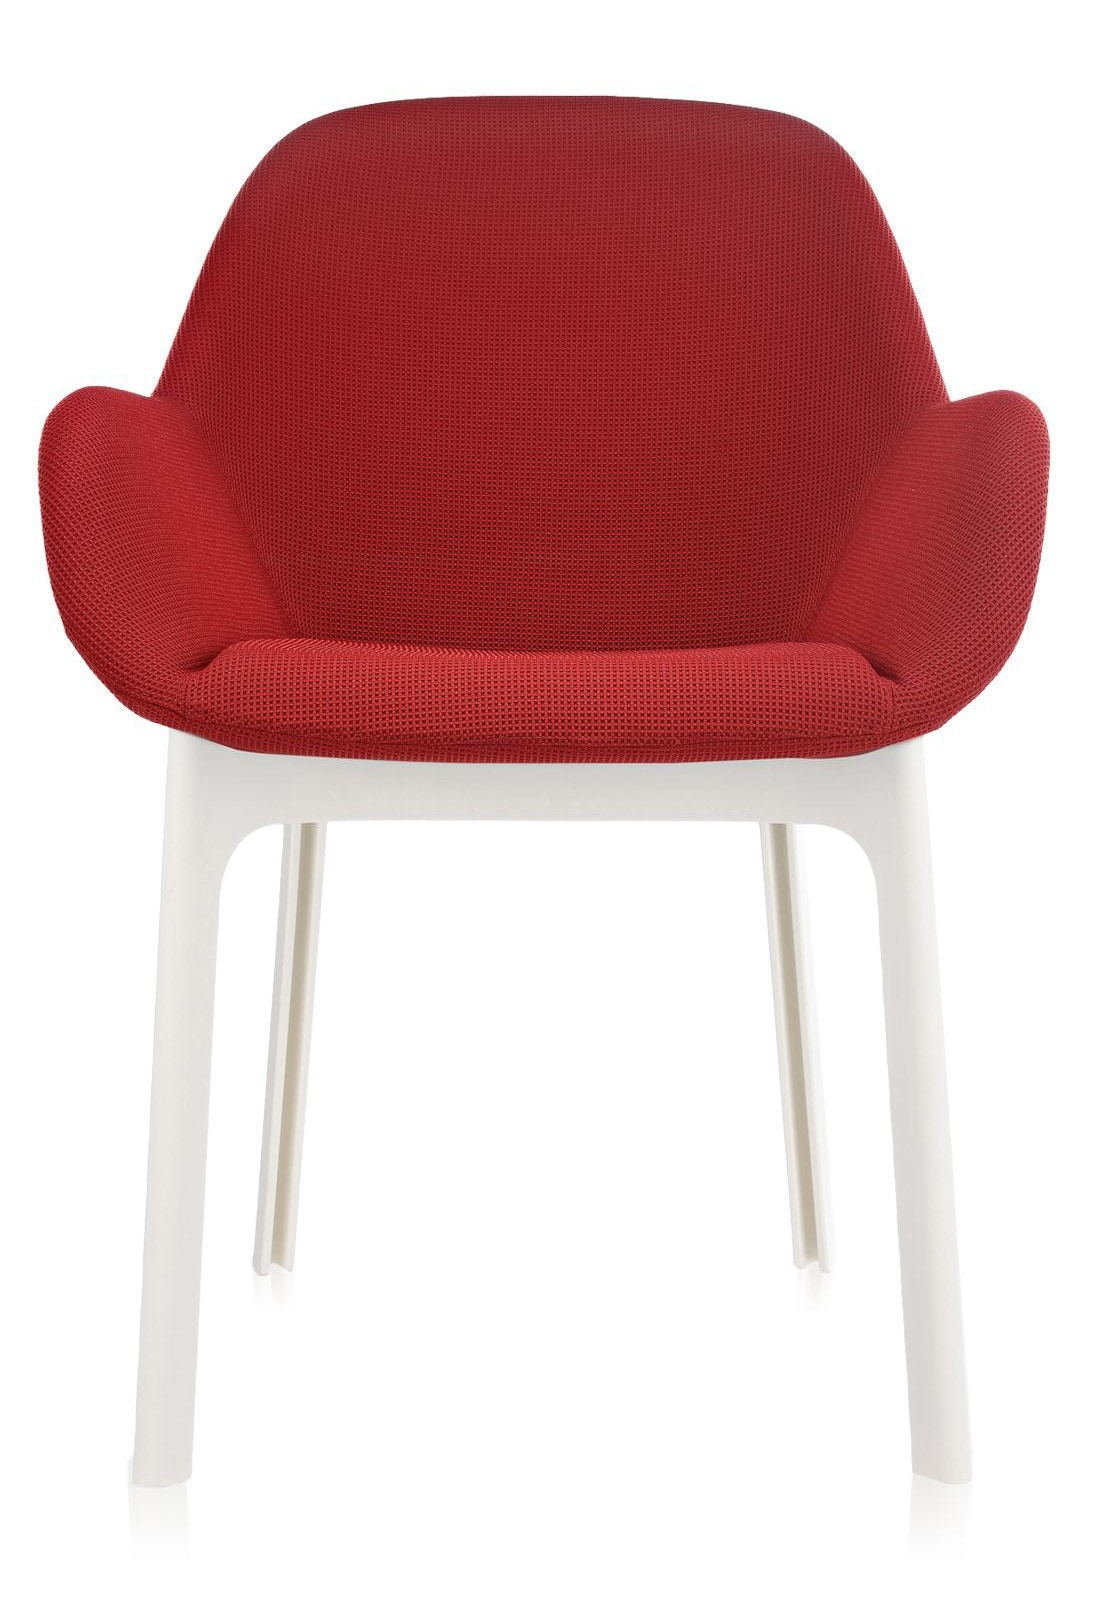 Kartell Clap Solid-Colored Fabric Armchair